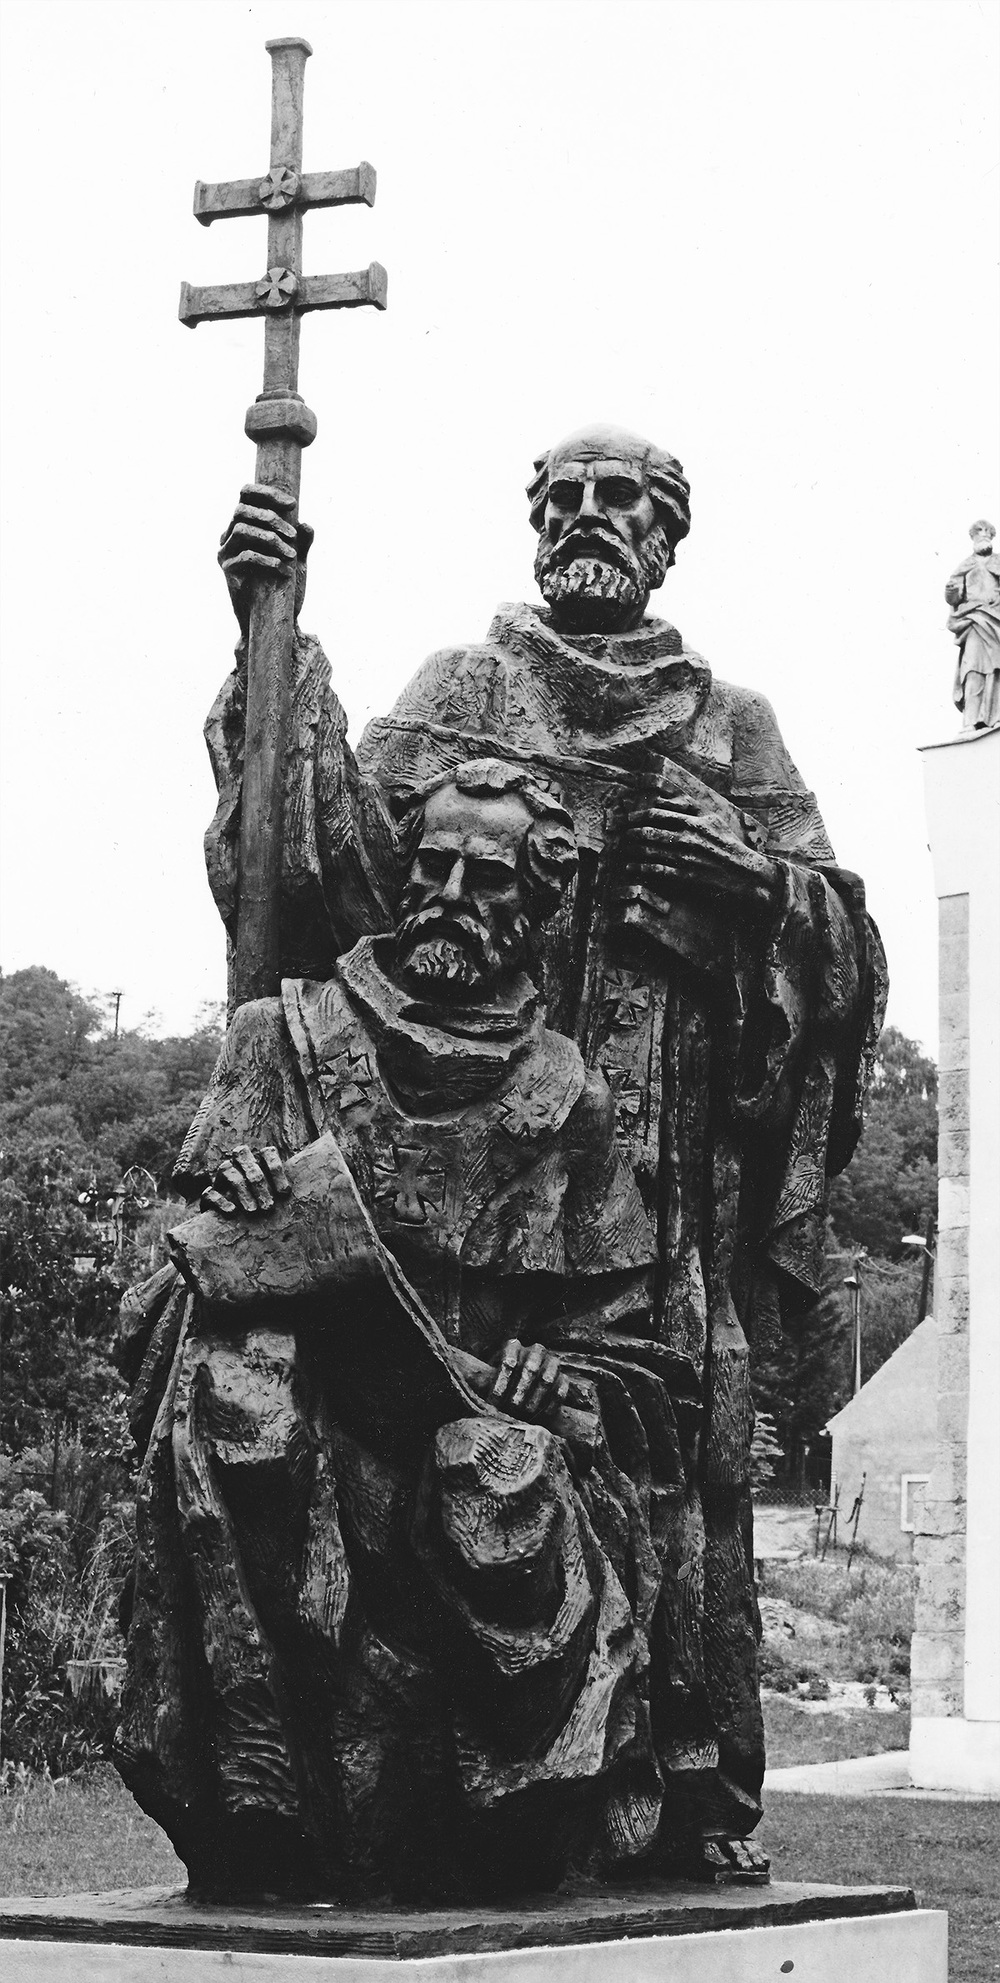 St. Cyril & Metodius   plaster 1992 / 1993   Was destroyed by the author when the sculpture hadn't received promised funding for a bronze cast from the newly established Slovak government.